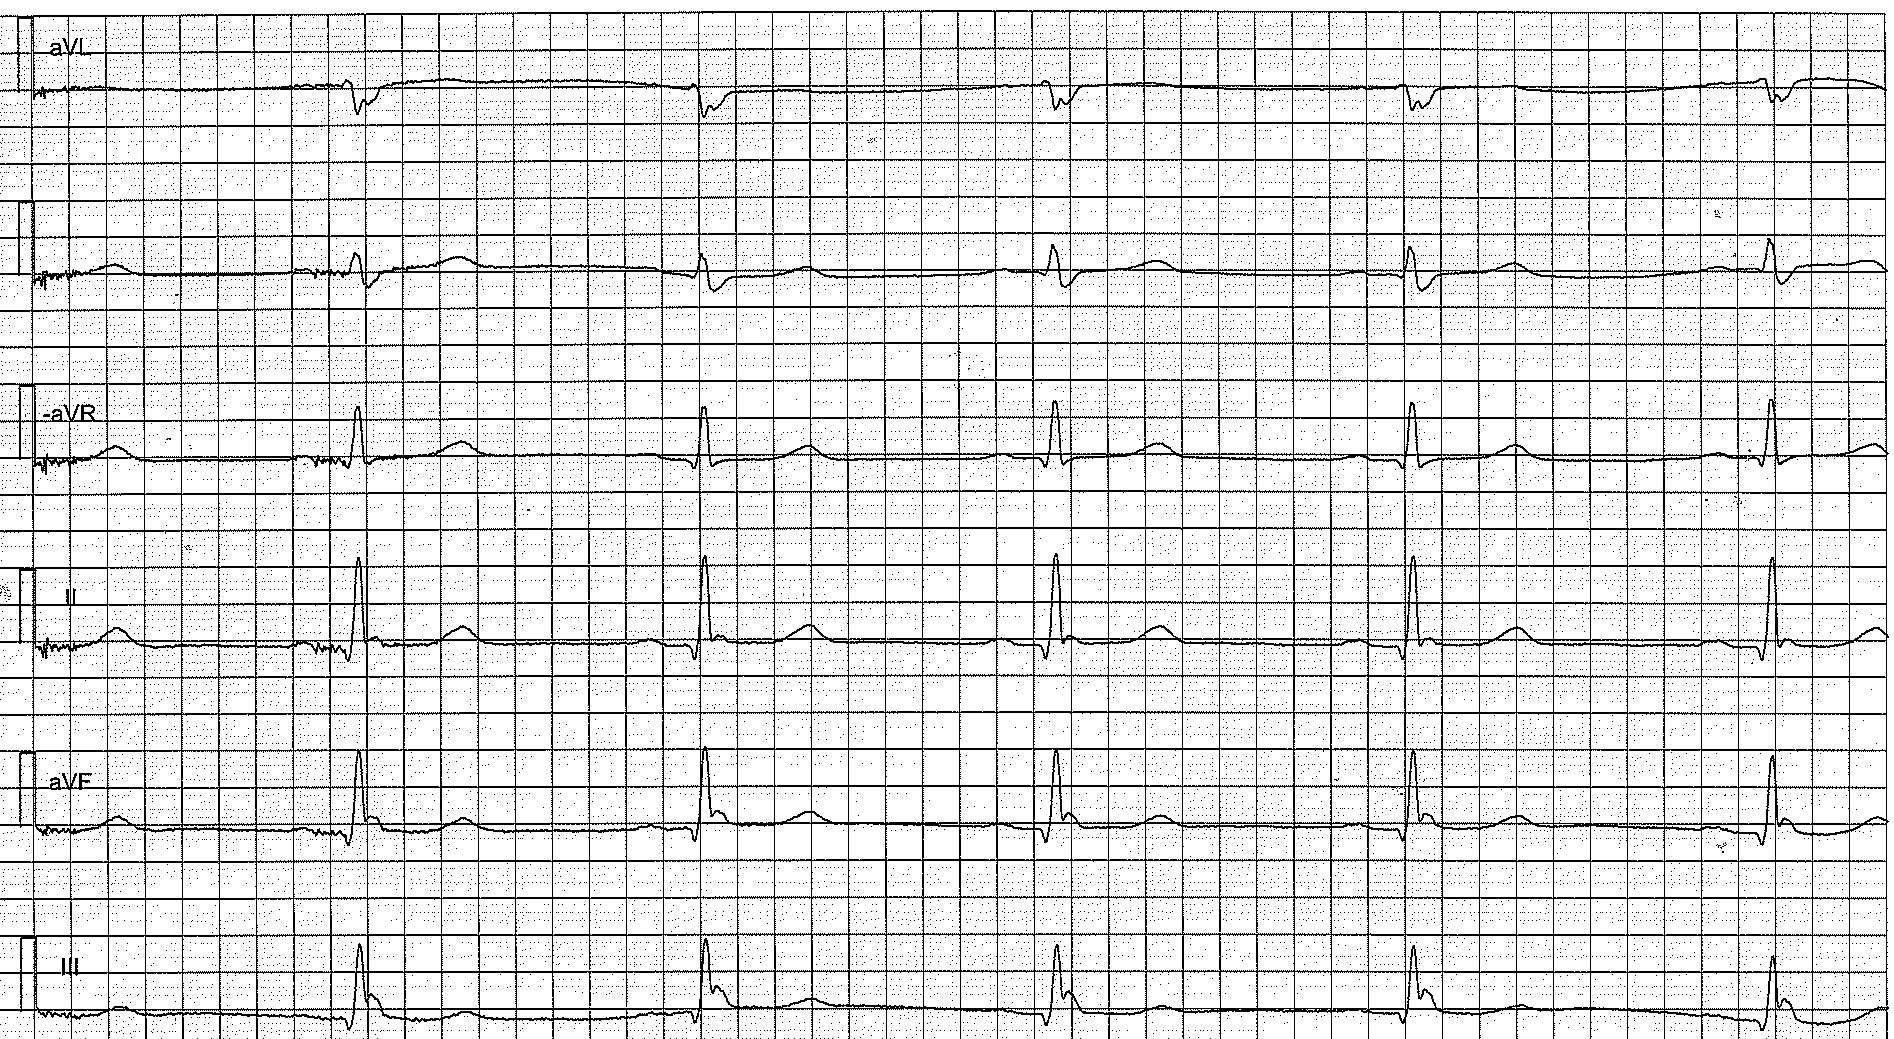 Figure 3. Osborn waves (J waves) in patient with early repolarization.